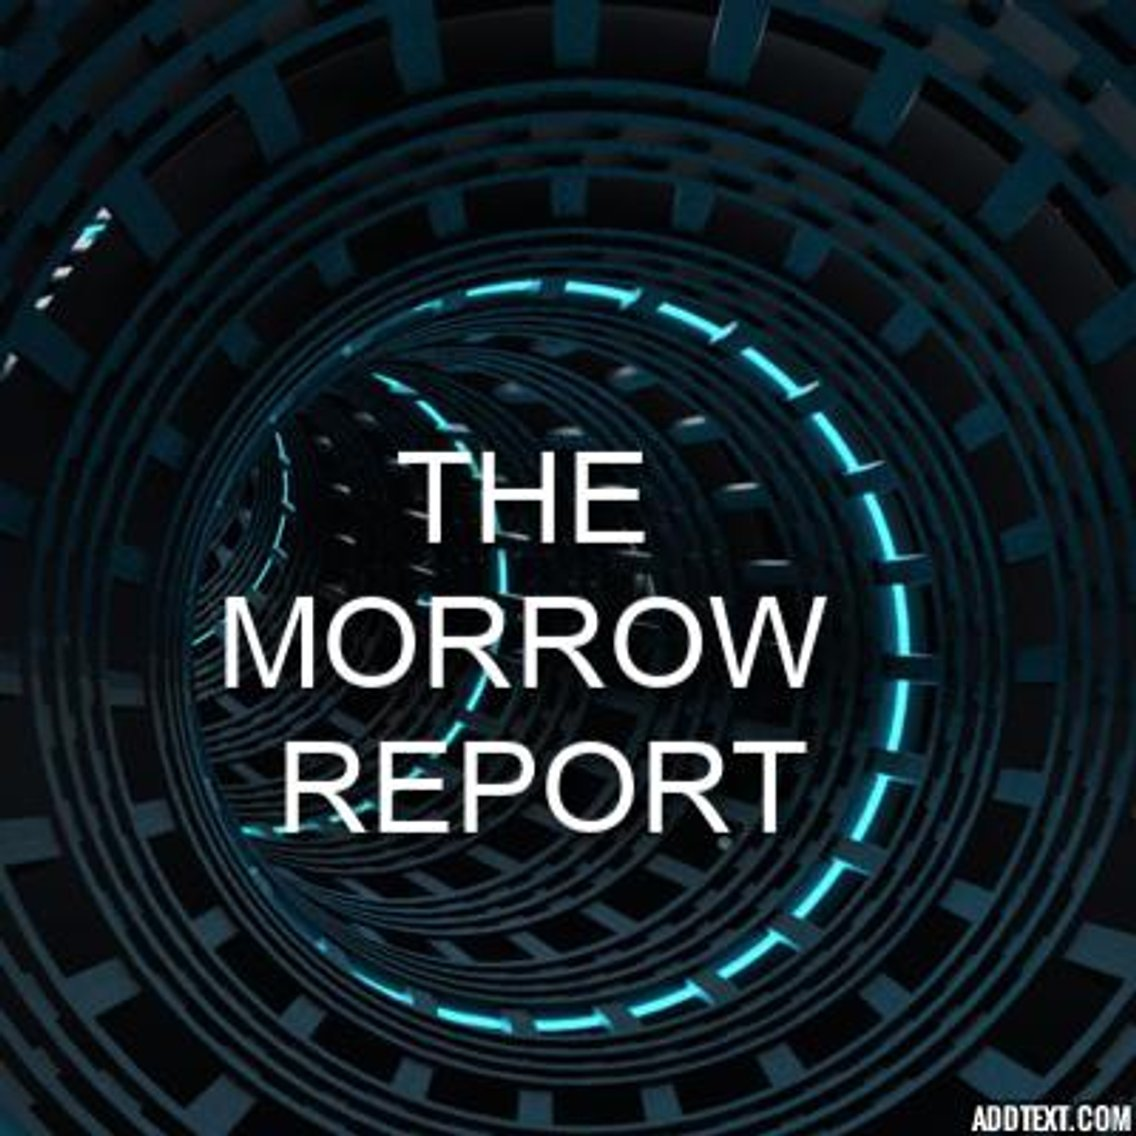 THE MORROW REPORT - Cover Image